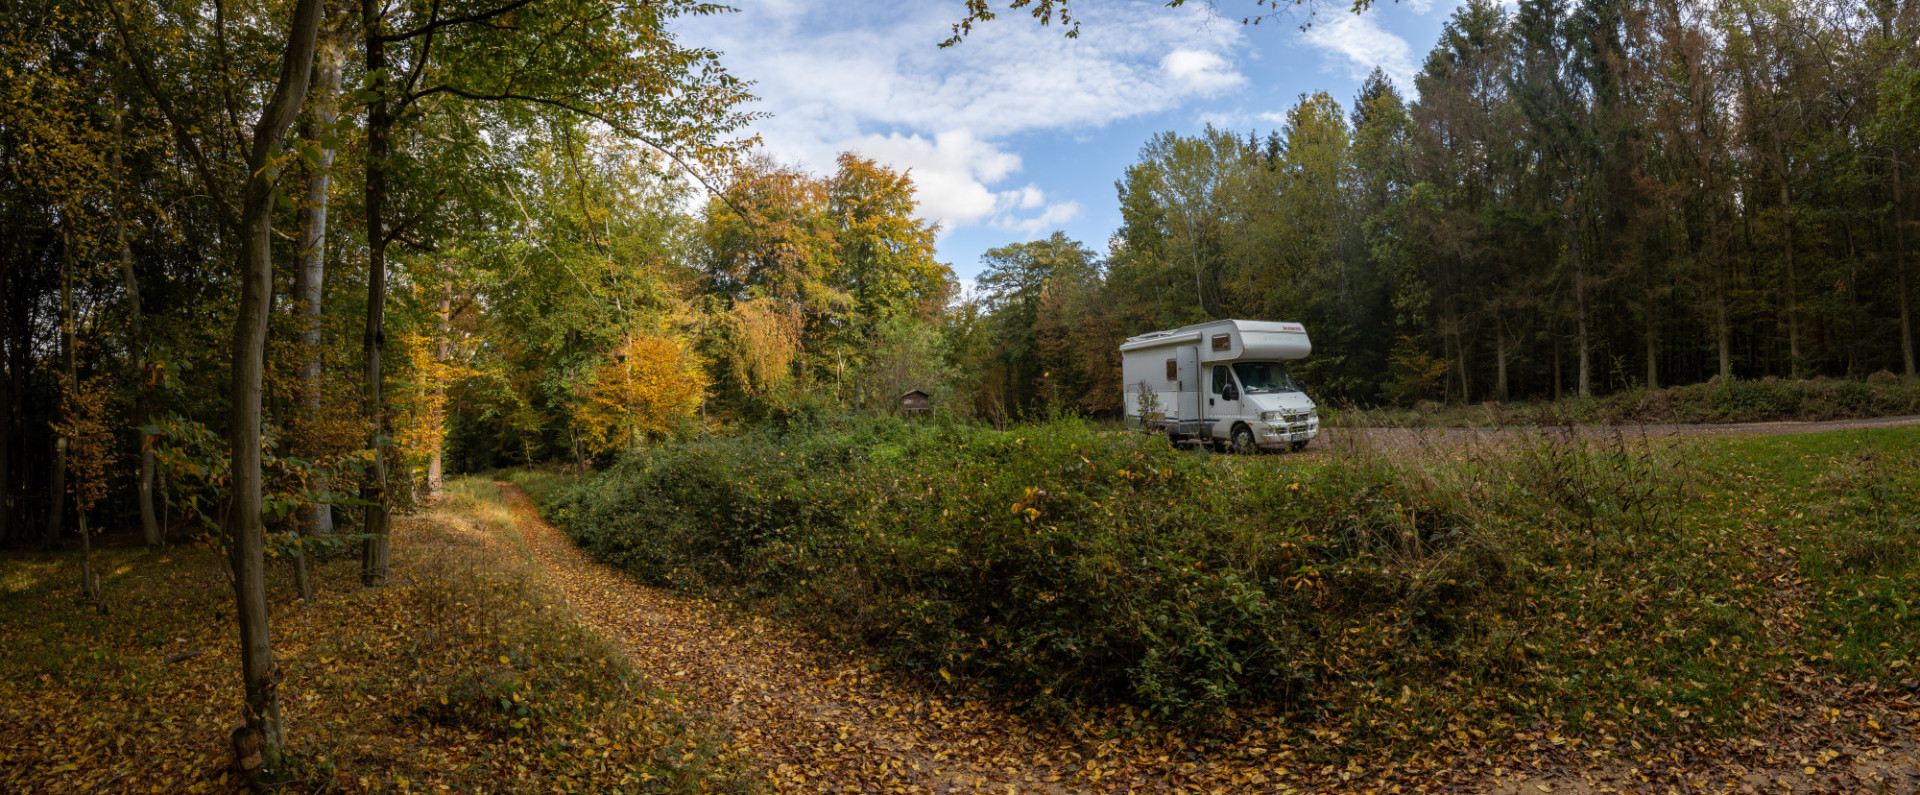 Caravan in the forest